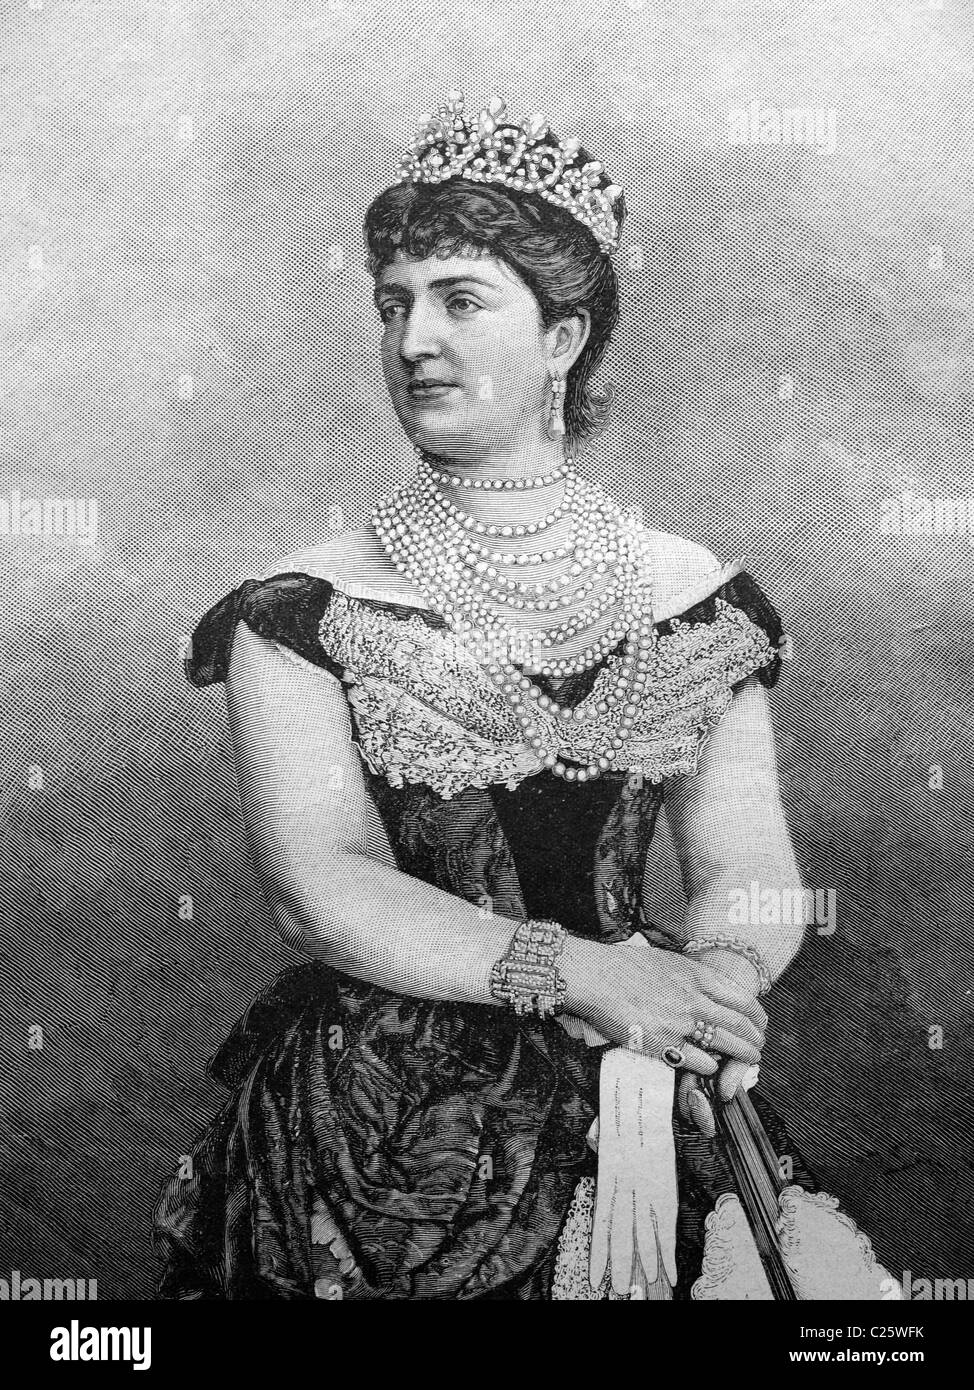 Margherita of Savoy, Queen of Italy, historical illustration circa 1893 - Stock Image